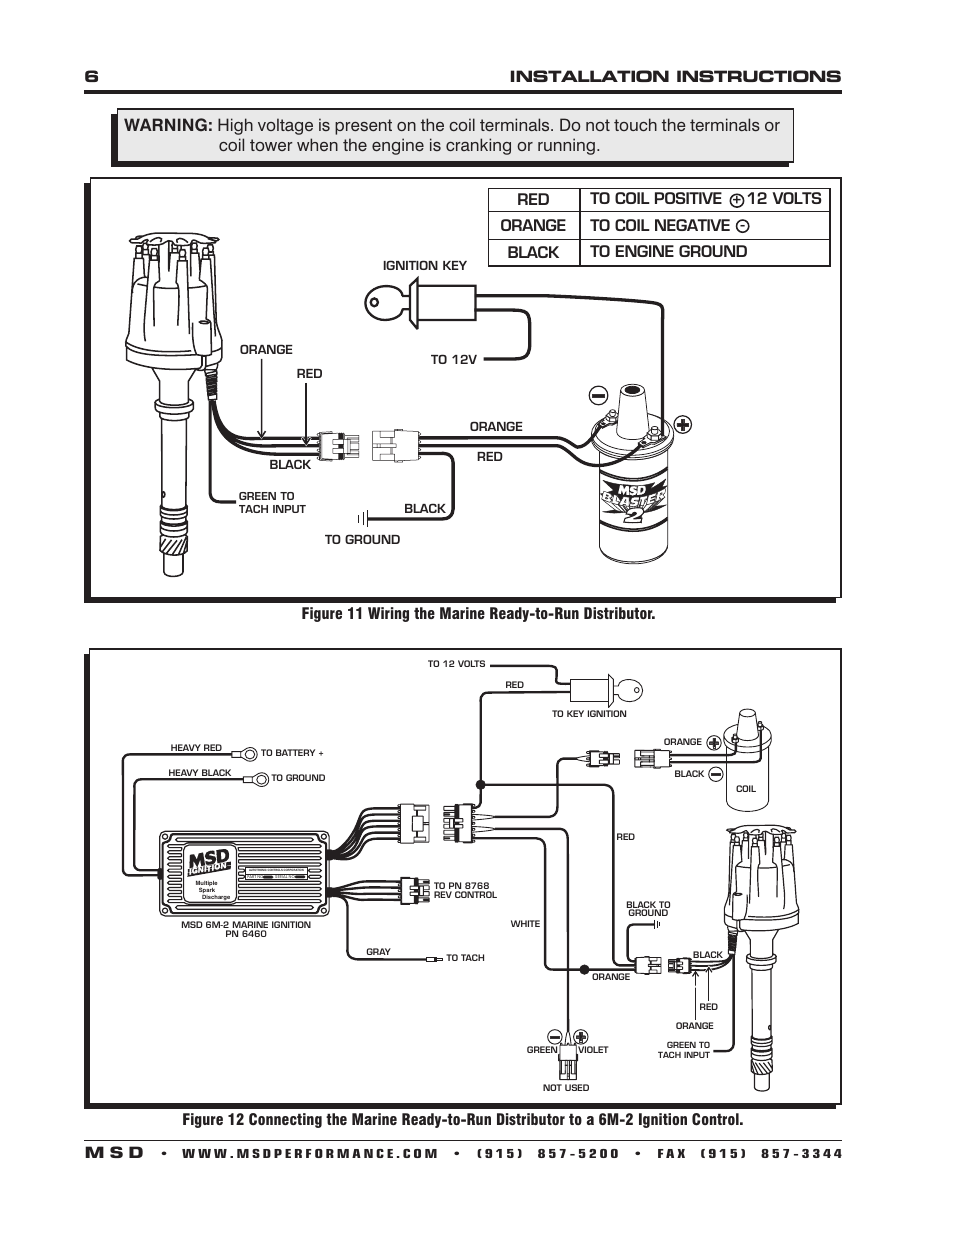 Msd Marine Distributor Wiring Electrical Diagram Gm 6installation Instructions M S D 83506 Ford 351 460 Ready To Rh Manualsdir Com Box Digital 6